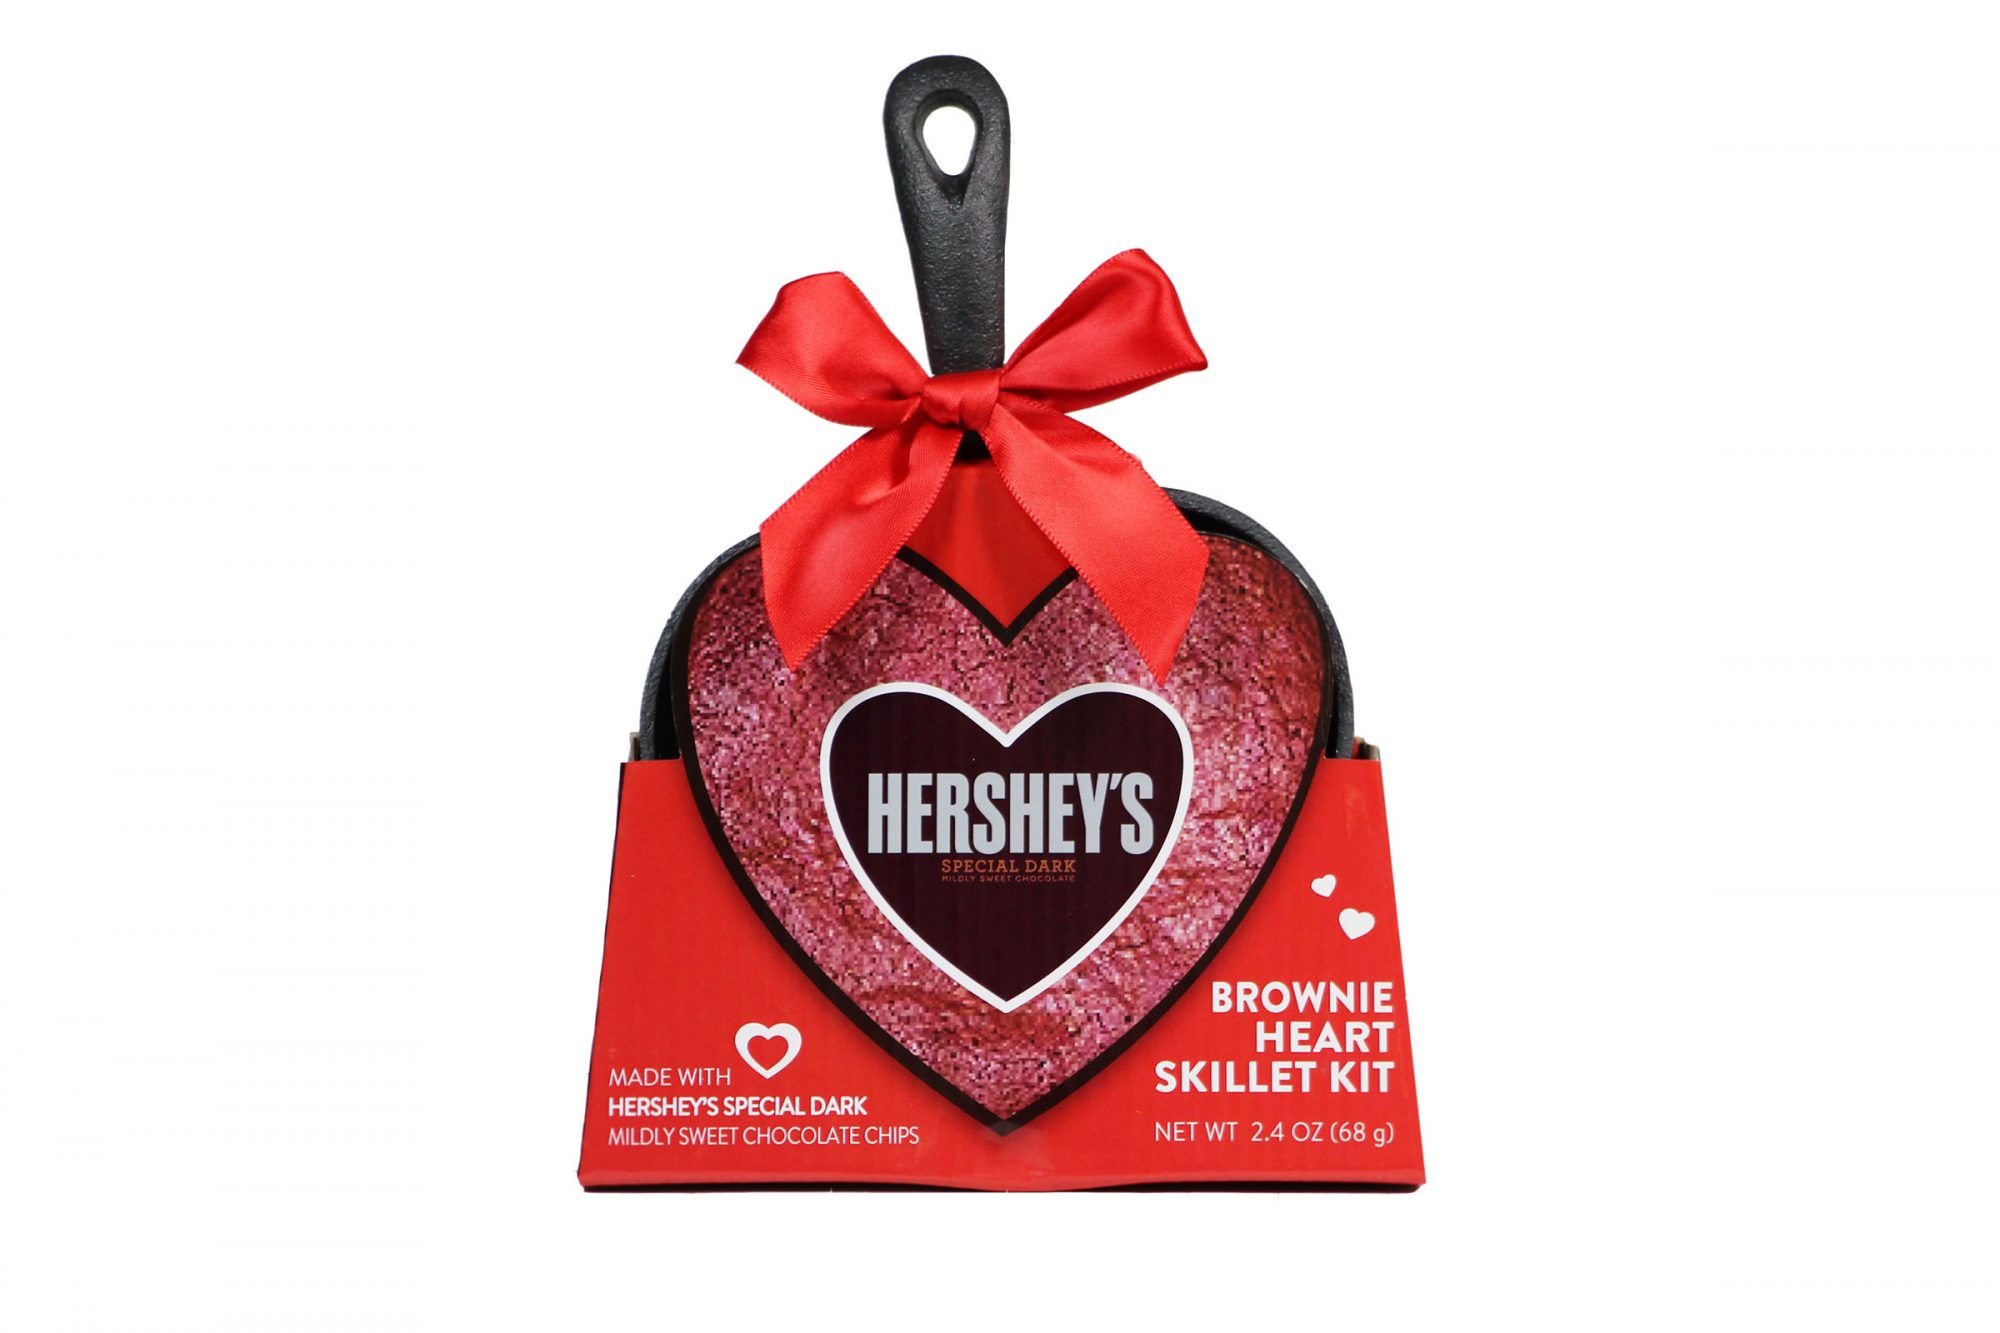 HEART SHAPE SKILLET WITH HERSHEY'S SPECIAL DARK CHOCOLATE BROWNIE MIX